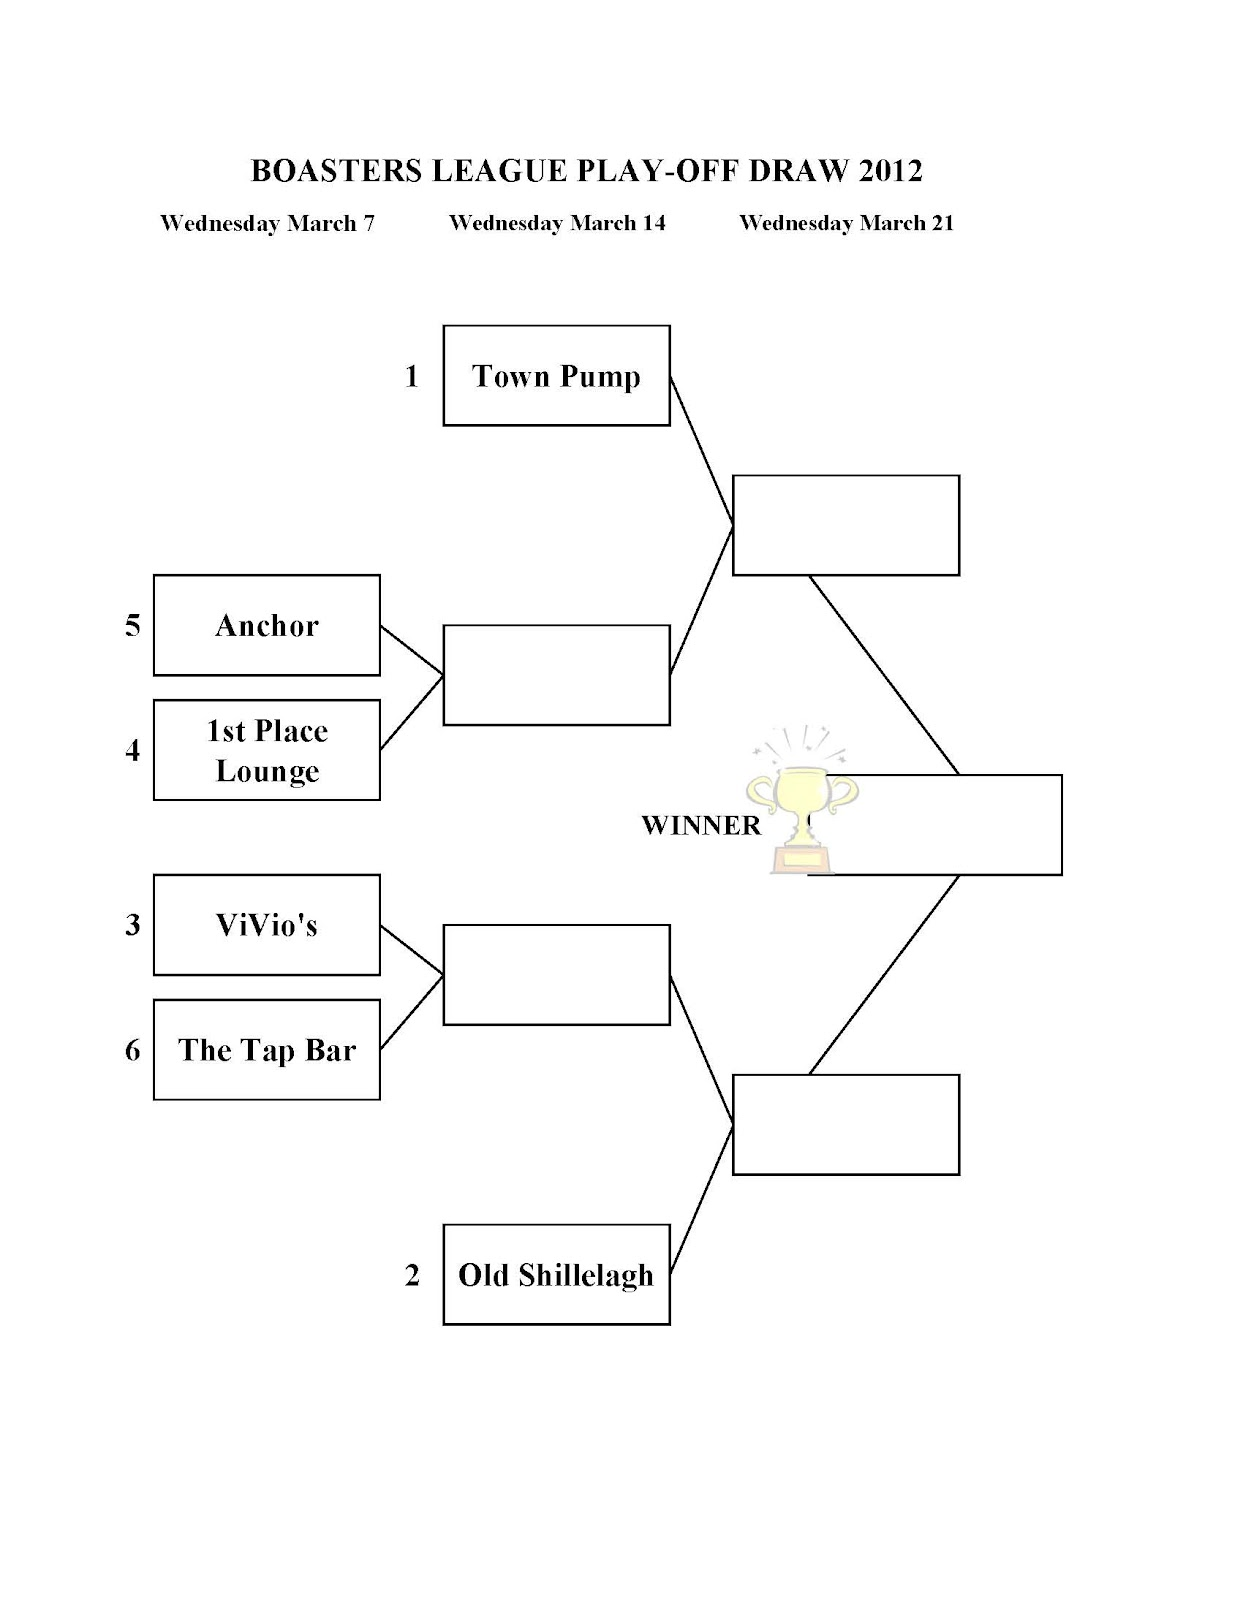 how to make round robin draw with 8 teams